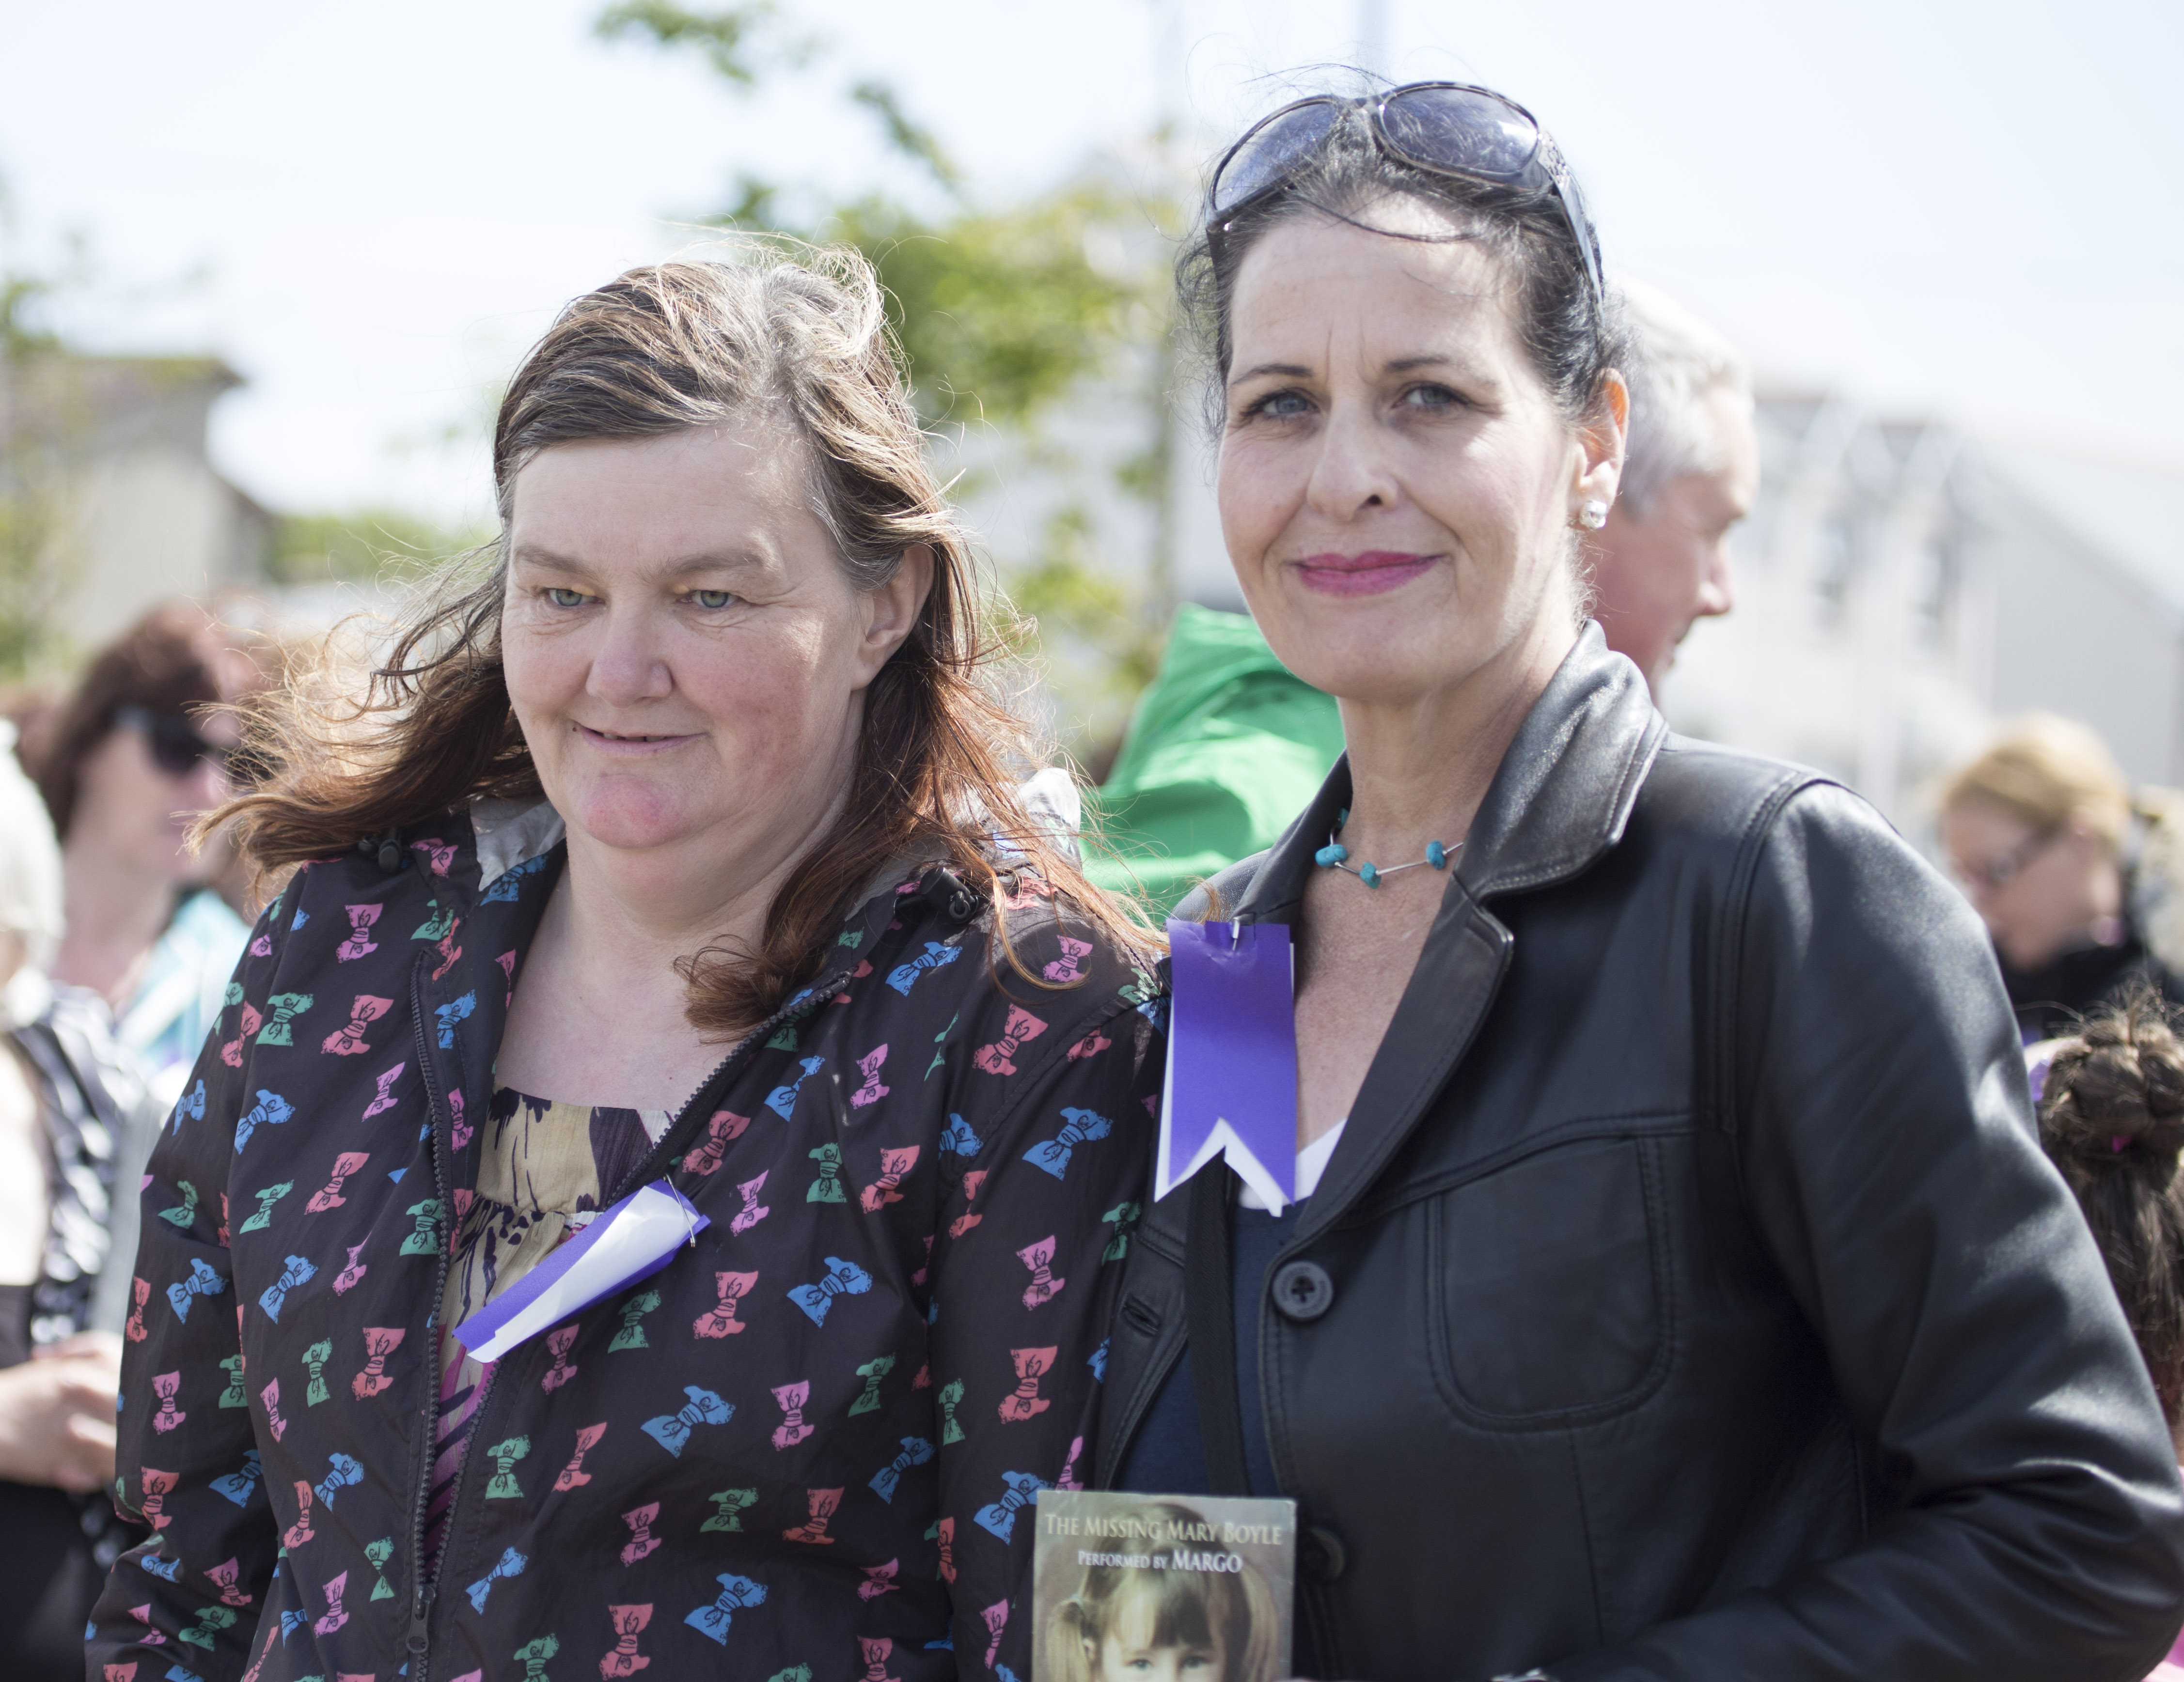 Mary Boyle's twin sister Ann with march organiser Naomi Brady in Ballyshannon.  (North West Newspix)